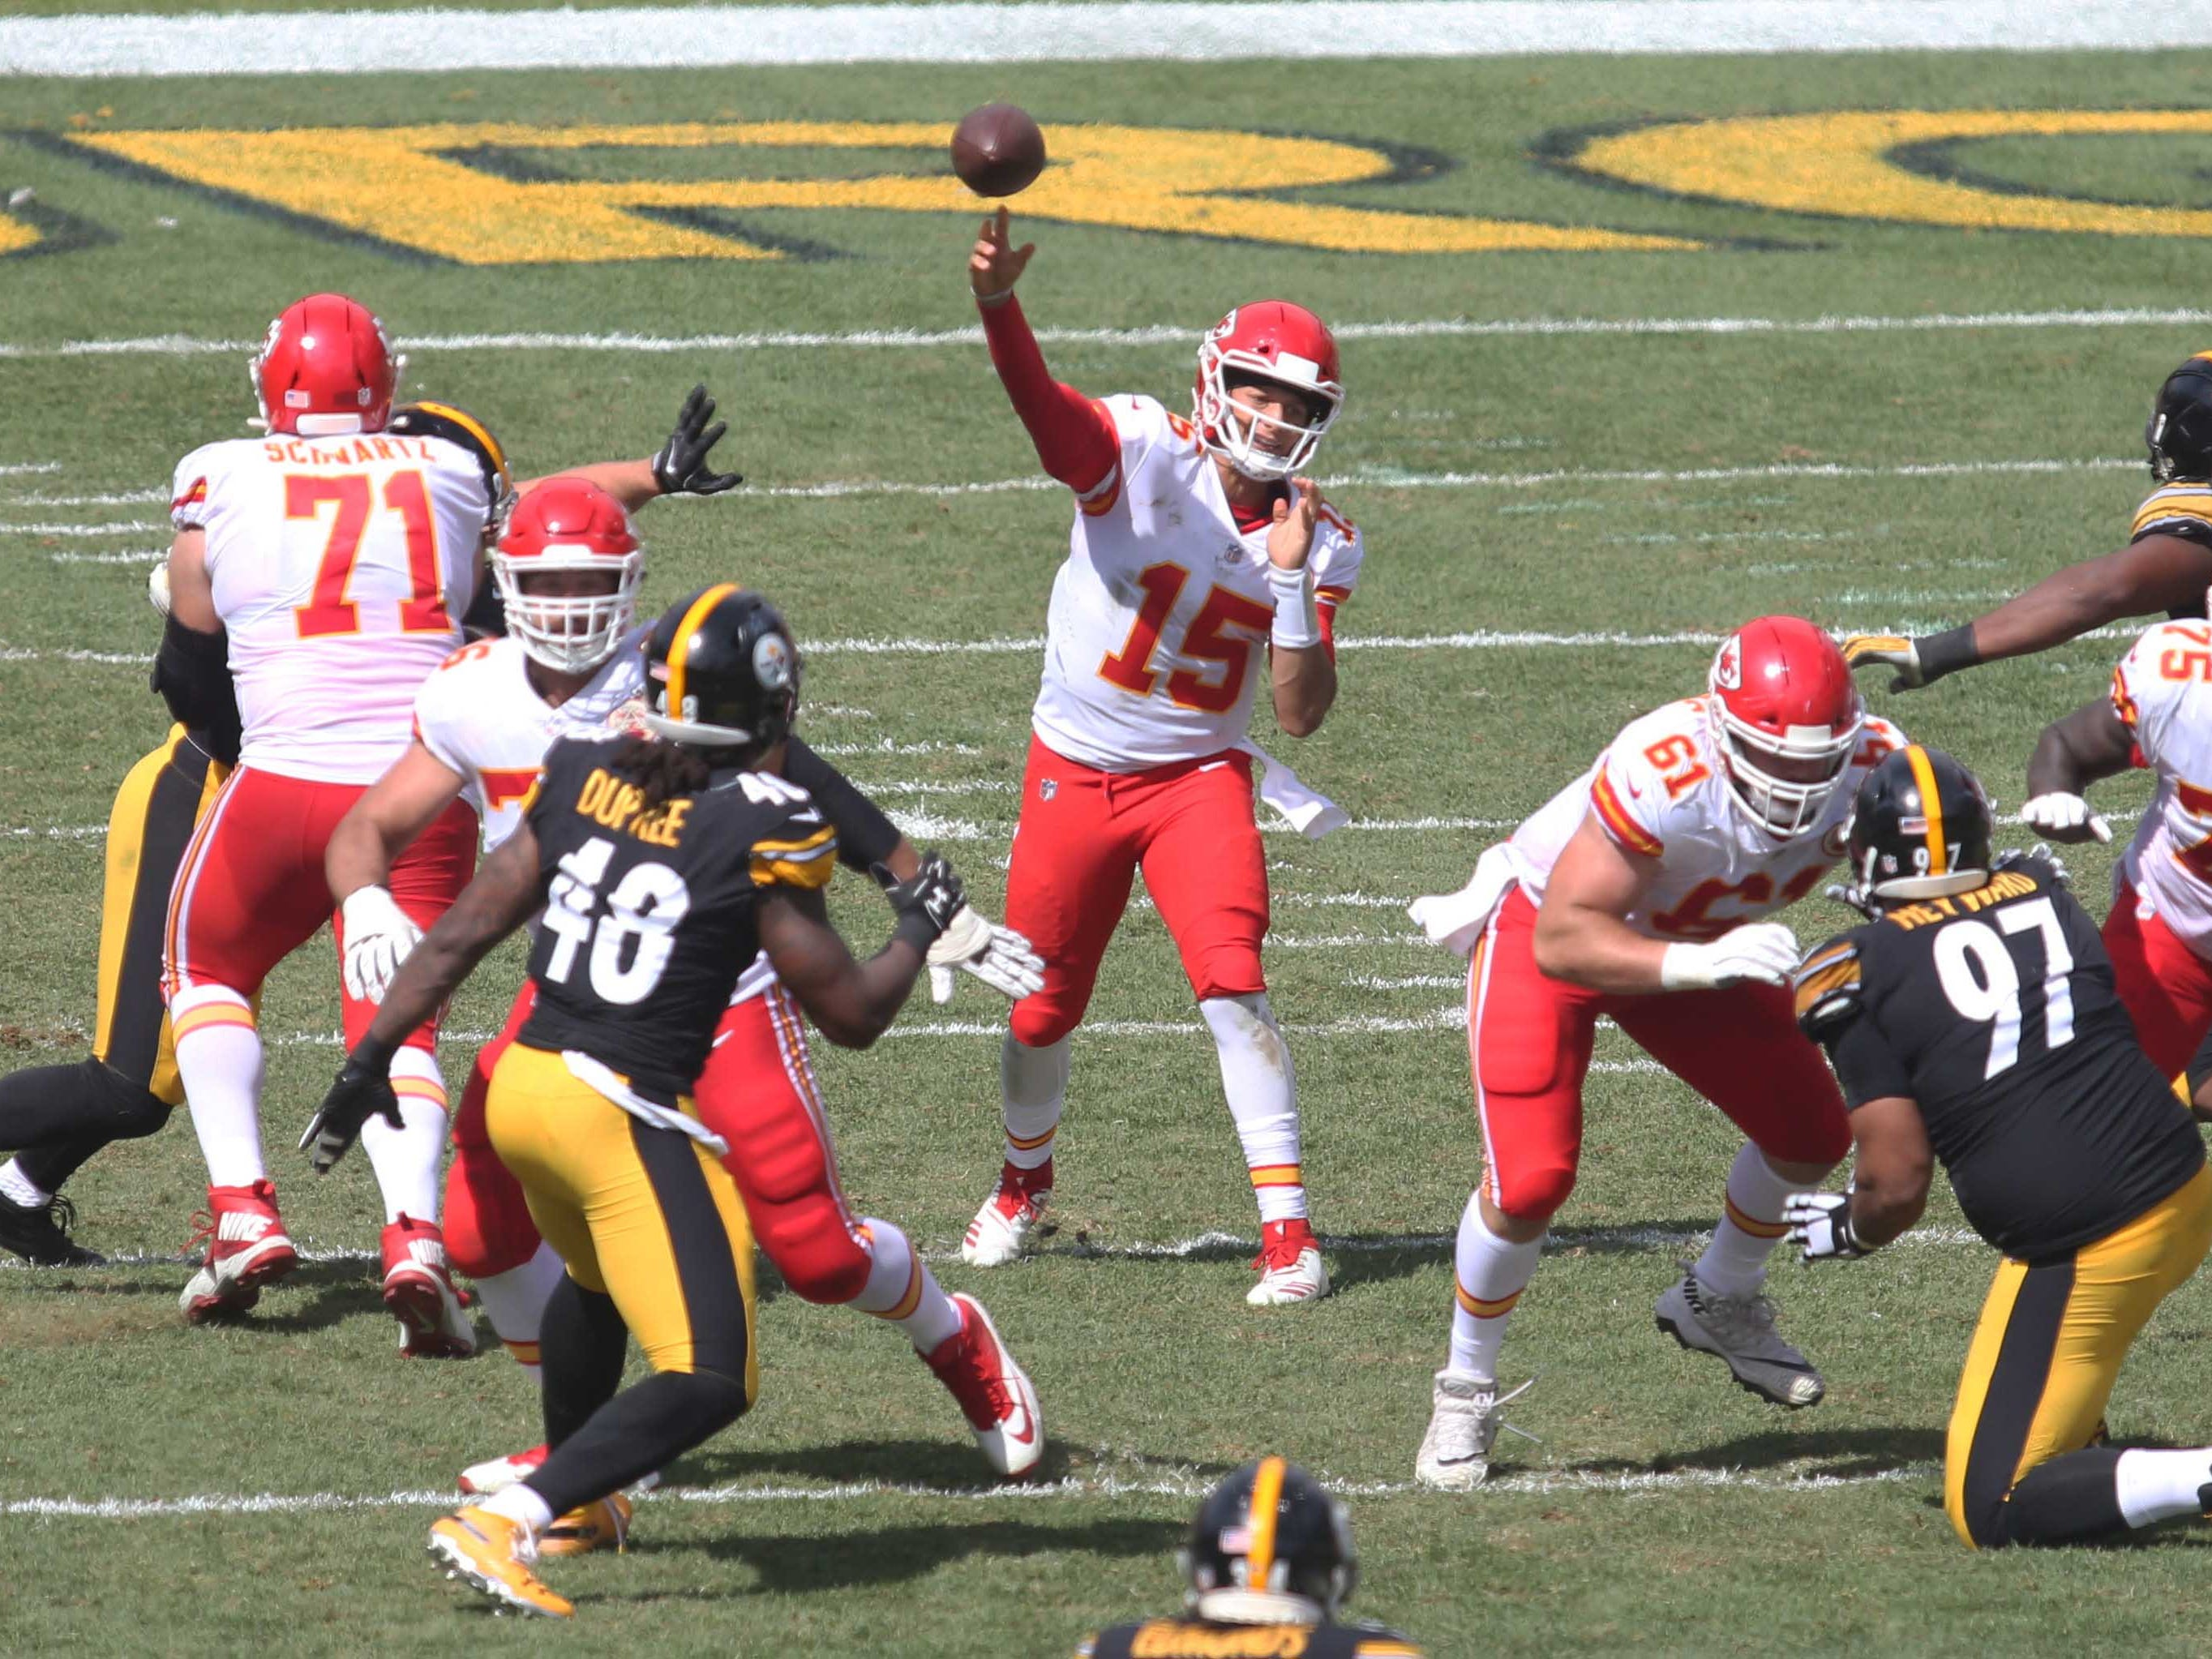 3. Chiefs (10): Patrick Mahomes is your MVP at two-week mark after stunning pair of wins against quality opponents. But beware league's last-ranked defense.